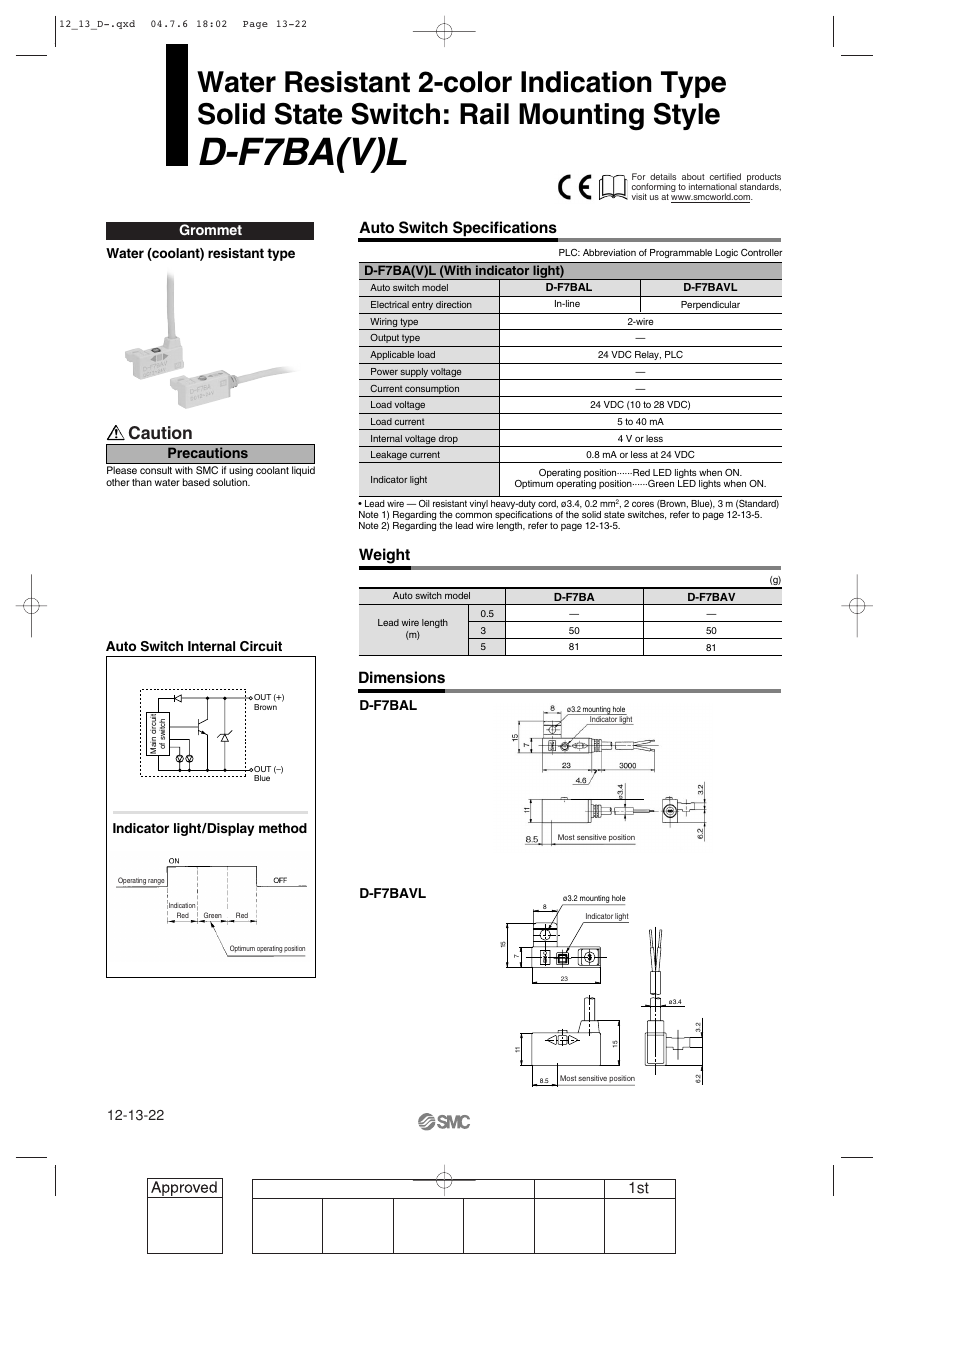 Water resistant 2-color indication type, D-f7ba(v)l rail ... on 3 wire fan diagram, two way switch diagram, 3 wire lighting diagram, 3 wire switch loop diagram, 3 pole switch diagram, lutron 3-way switch diagram, 3-way electrical connection diagram, 3 switches 1 light diagram, 3 wire dimmer switch diagram, 12 3 wire diagram, 3 wire circuit diagram, 6 prong toggle switch diagram, 3 wire switch schematic, easy 3 way switch diagram, 3 wire light switch, 3 wire house wiring, 3 prong switch diagram, 14 3 wire diagram, cooper 3 way switch diagram,